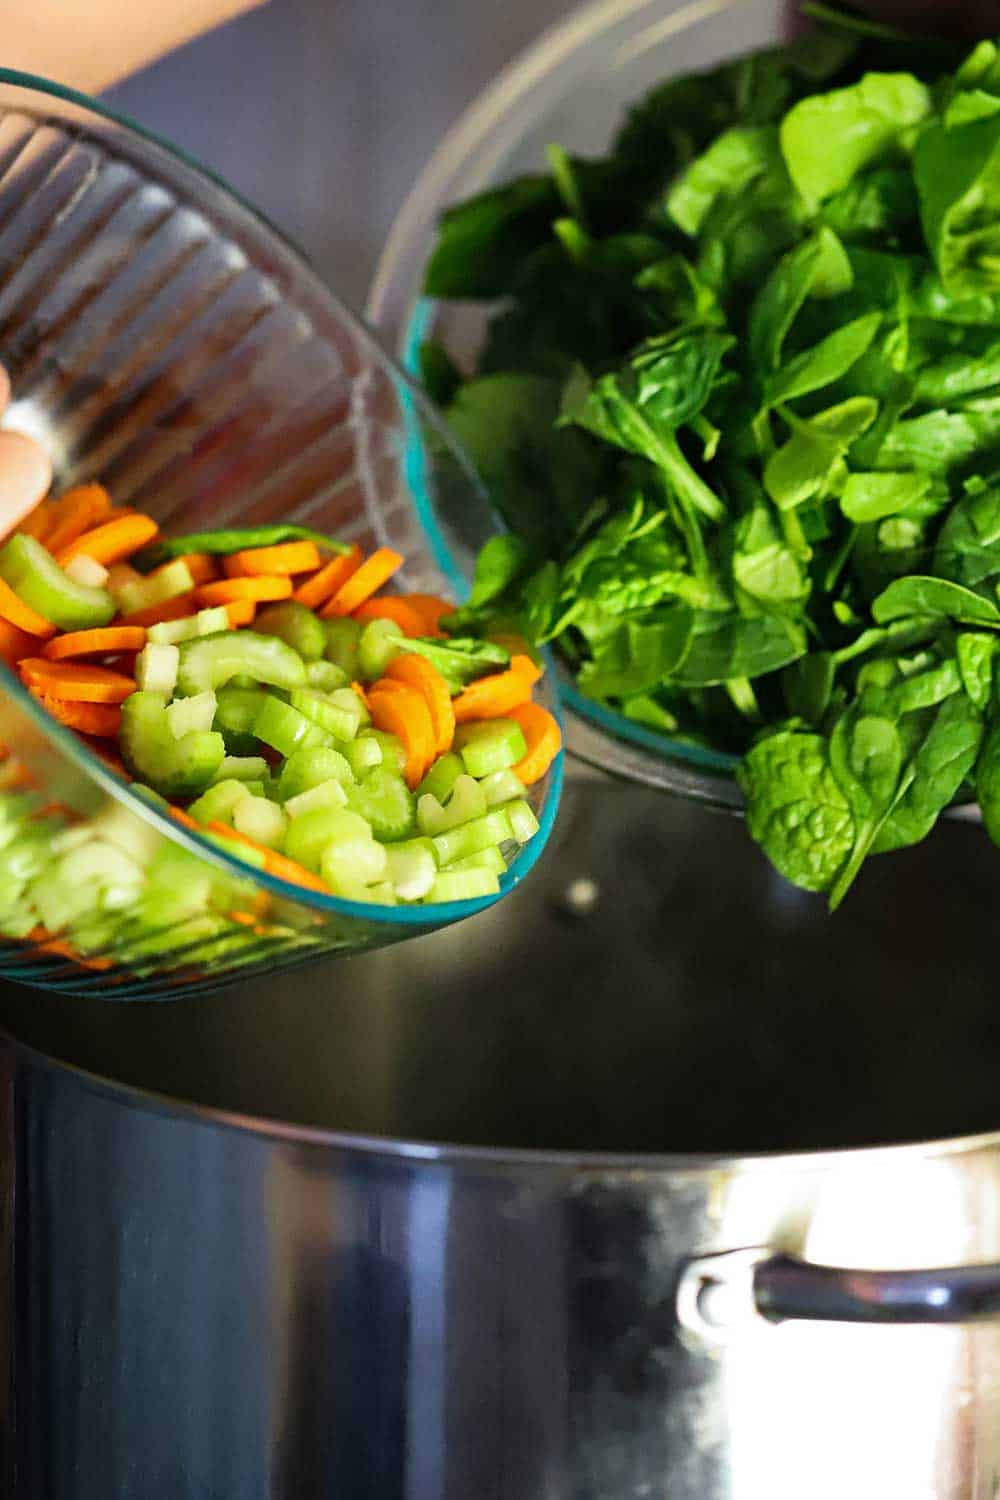 Two glass bowls, one filled with sliced celery and carrots and the other with spinach, both over a stock pot.